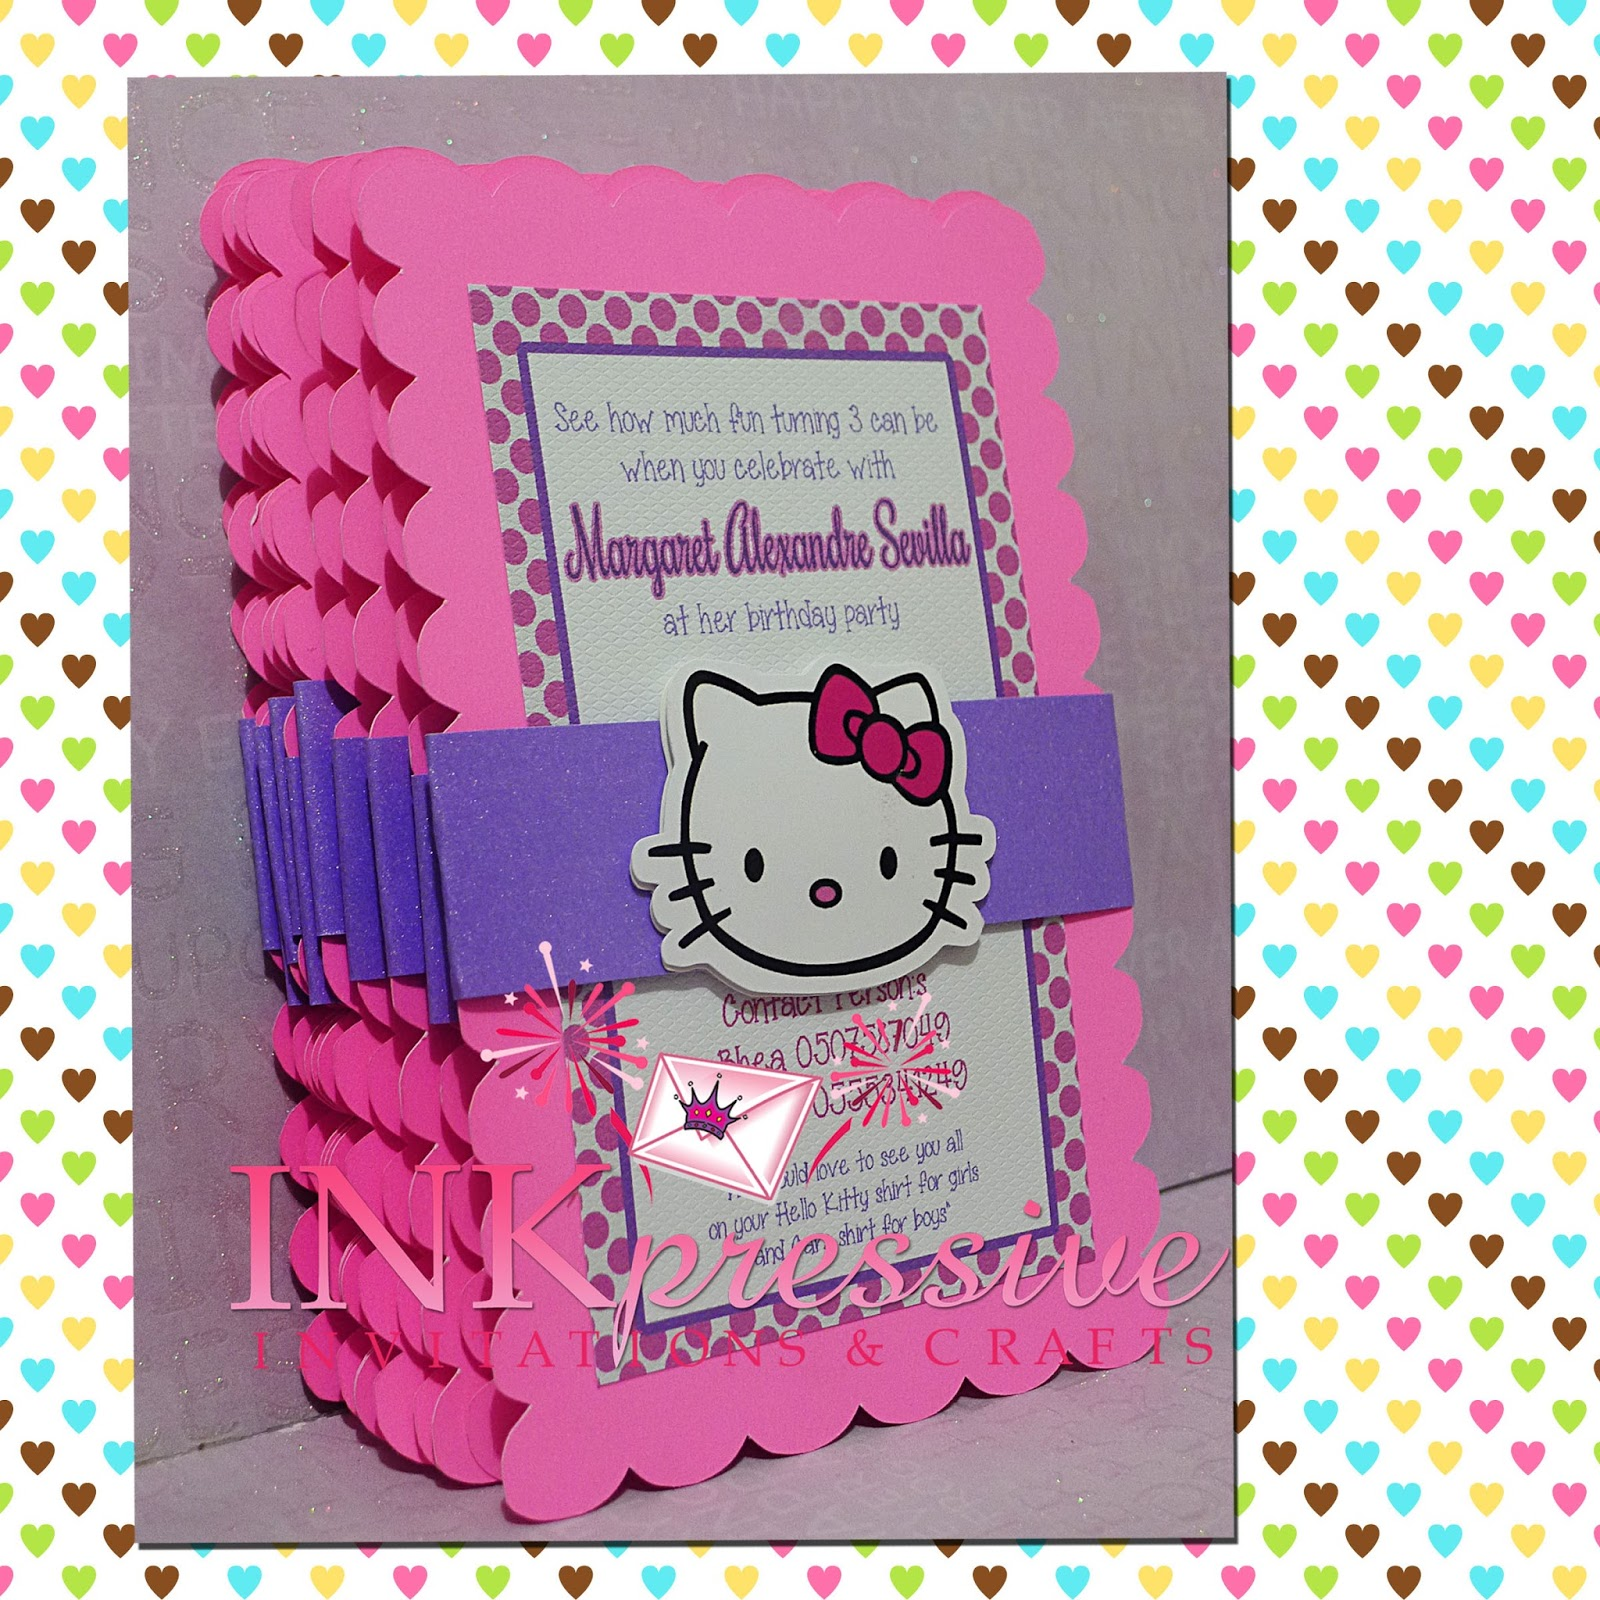 kitty party invitation card matter format of st birthday pink purple hello kitty invitation inkpressive invitations